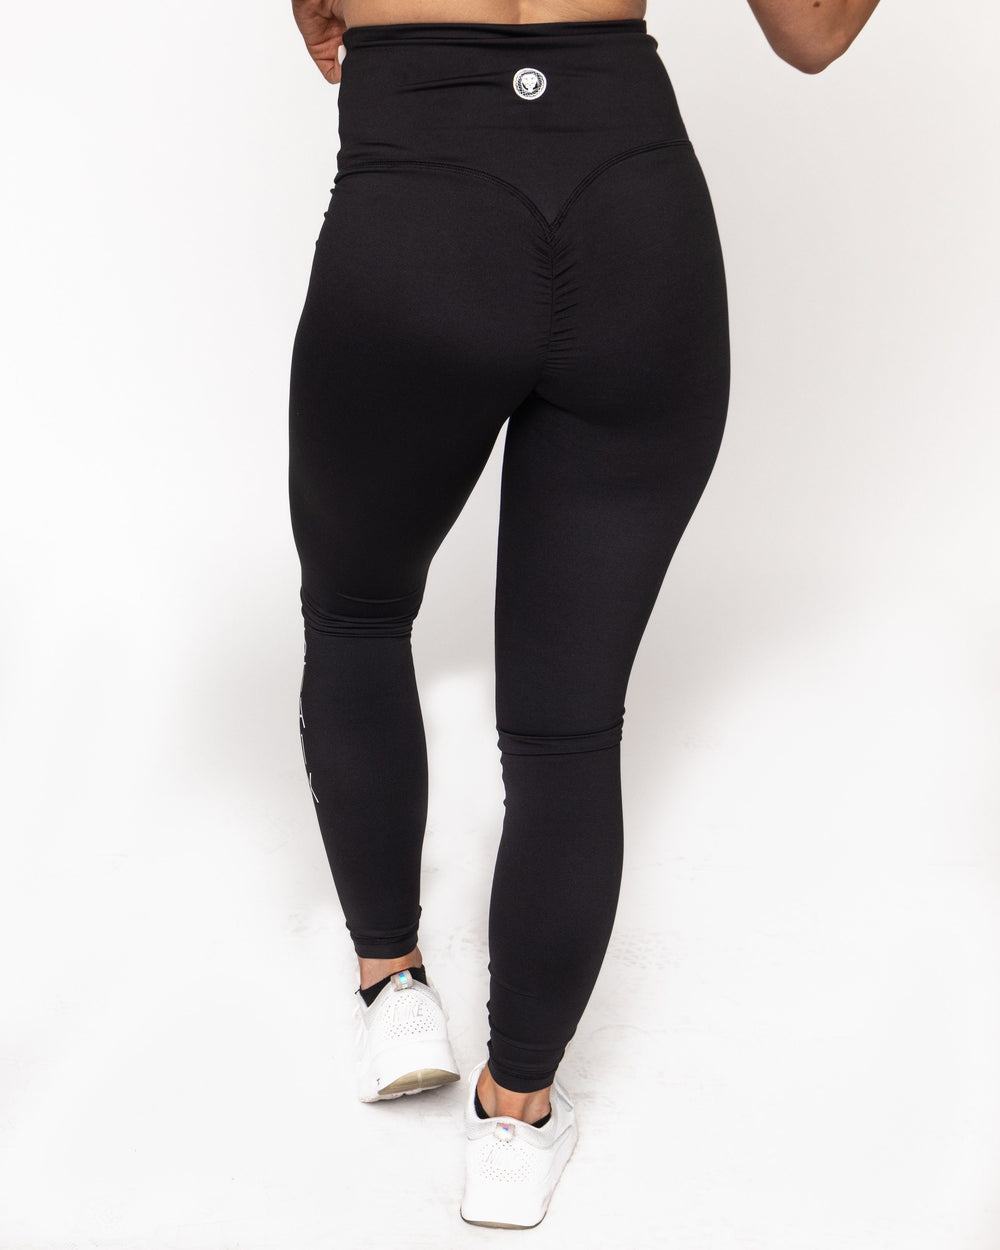 Scrunch Leggings - Black WOMEN'S LEGGINGS STAIX